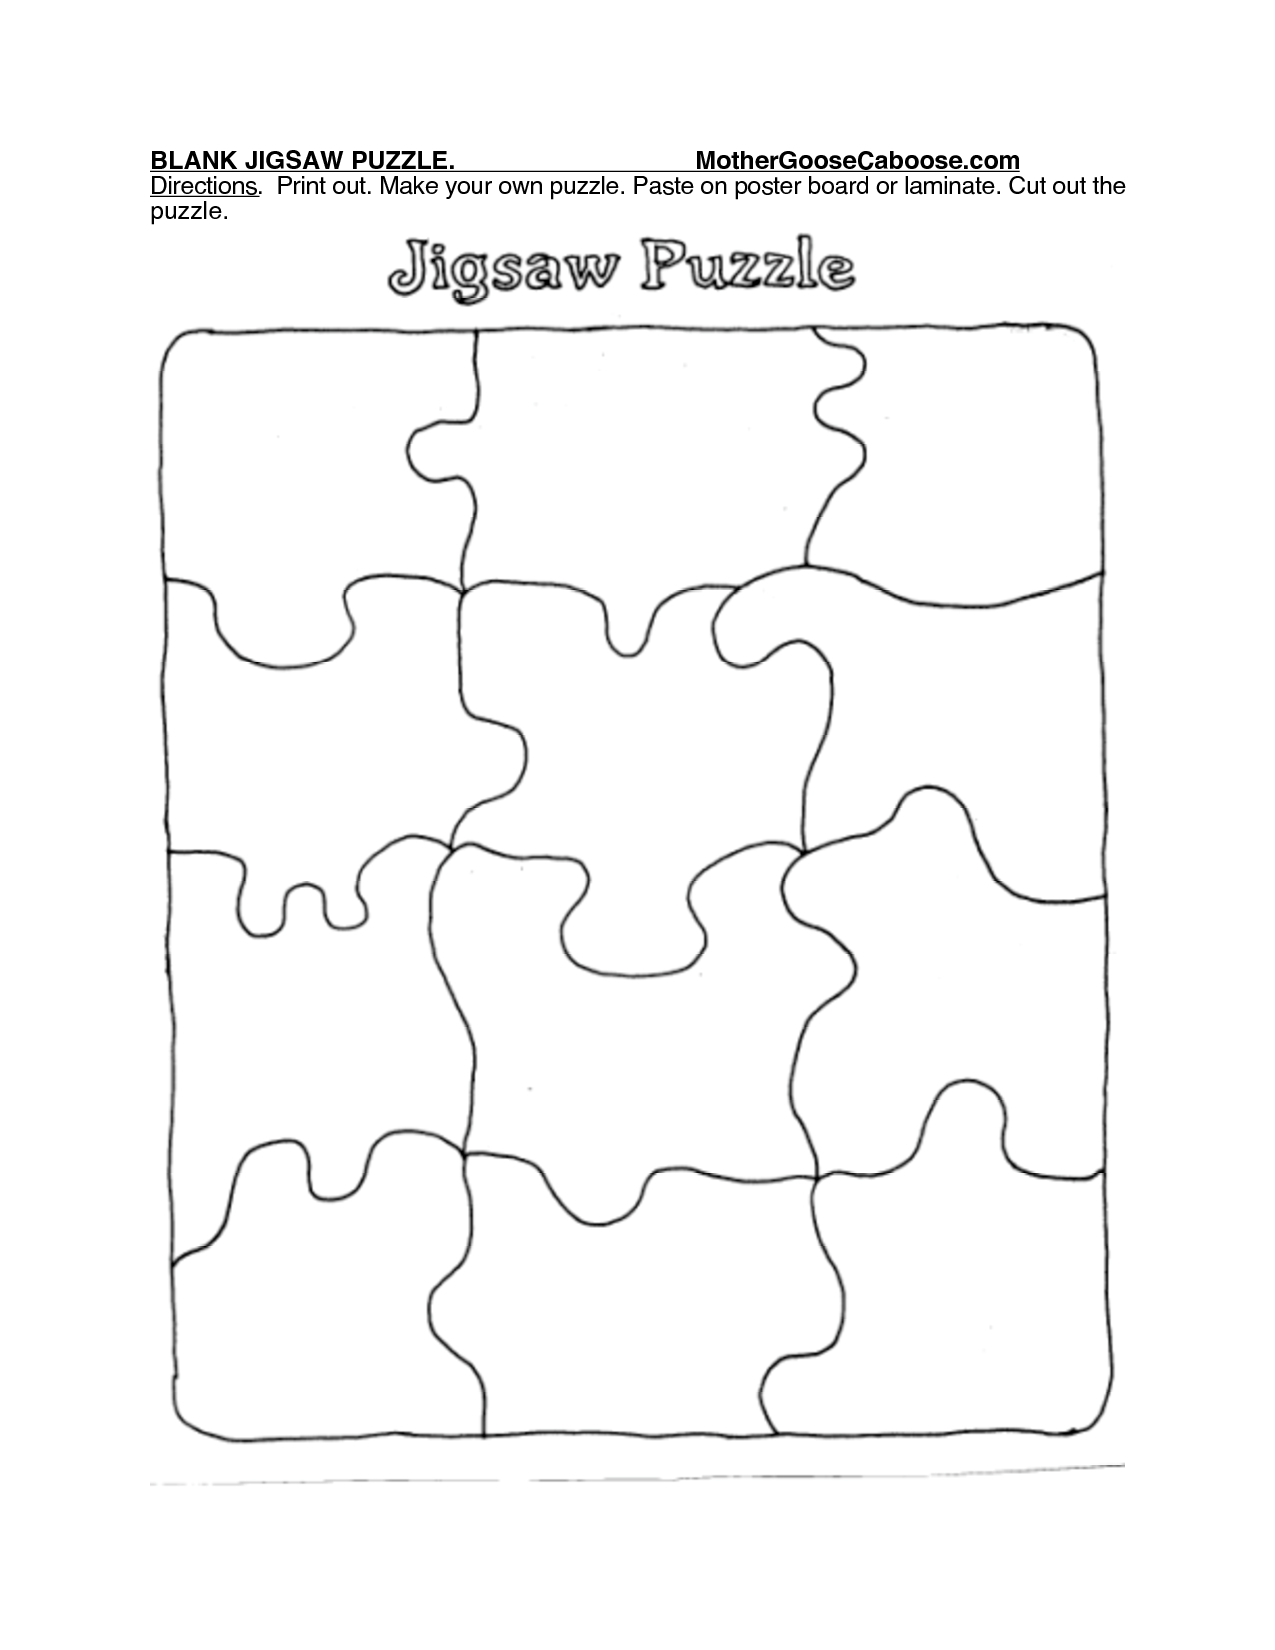 Printable Puzzle Piece Template | Search Results | New Calendar - Printable Jigsaw Puzzles Pieces